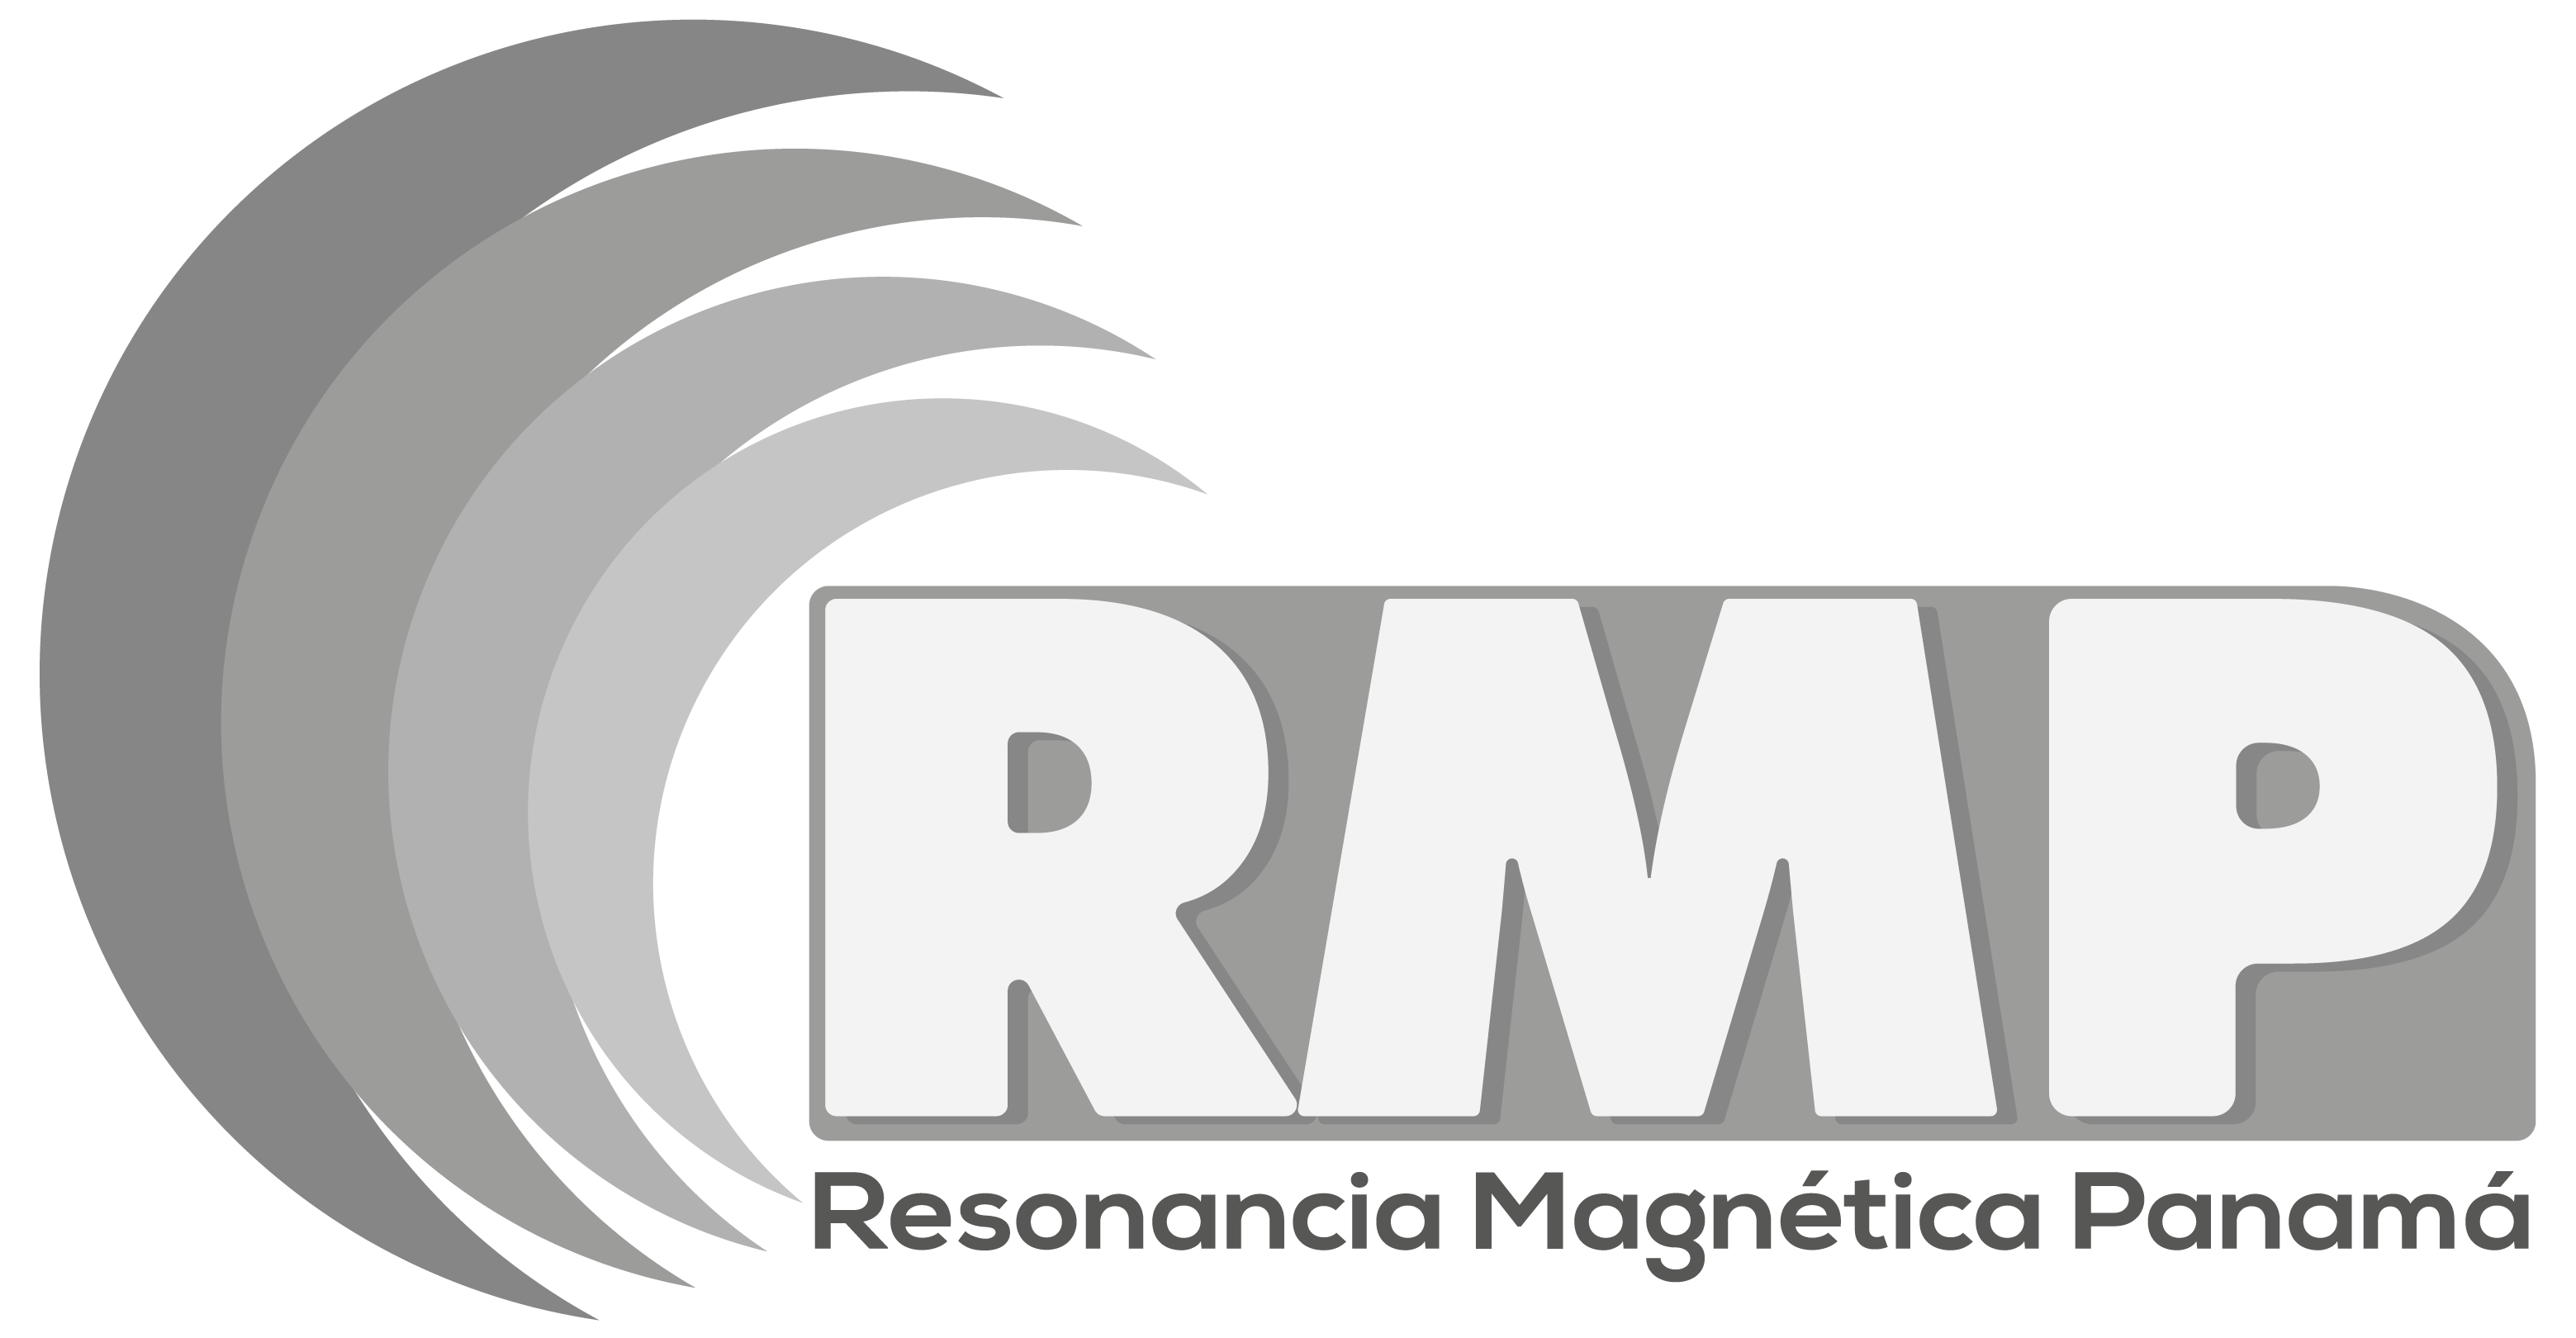 resonancia magnetica panama